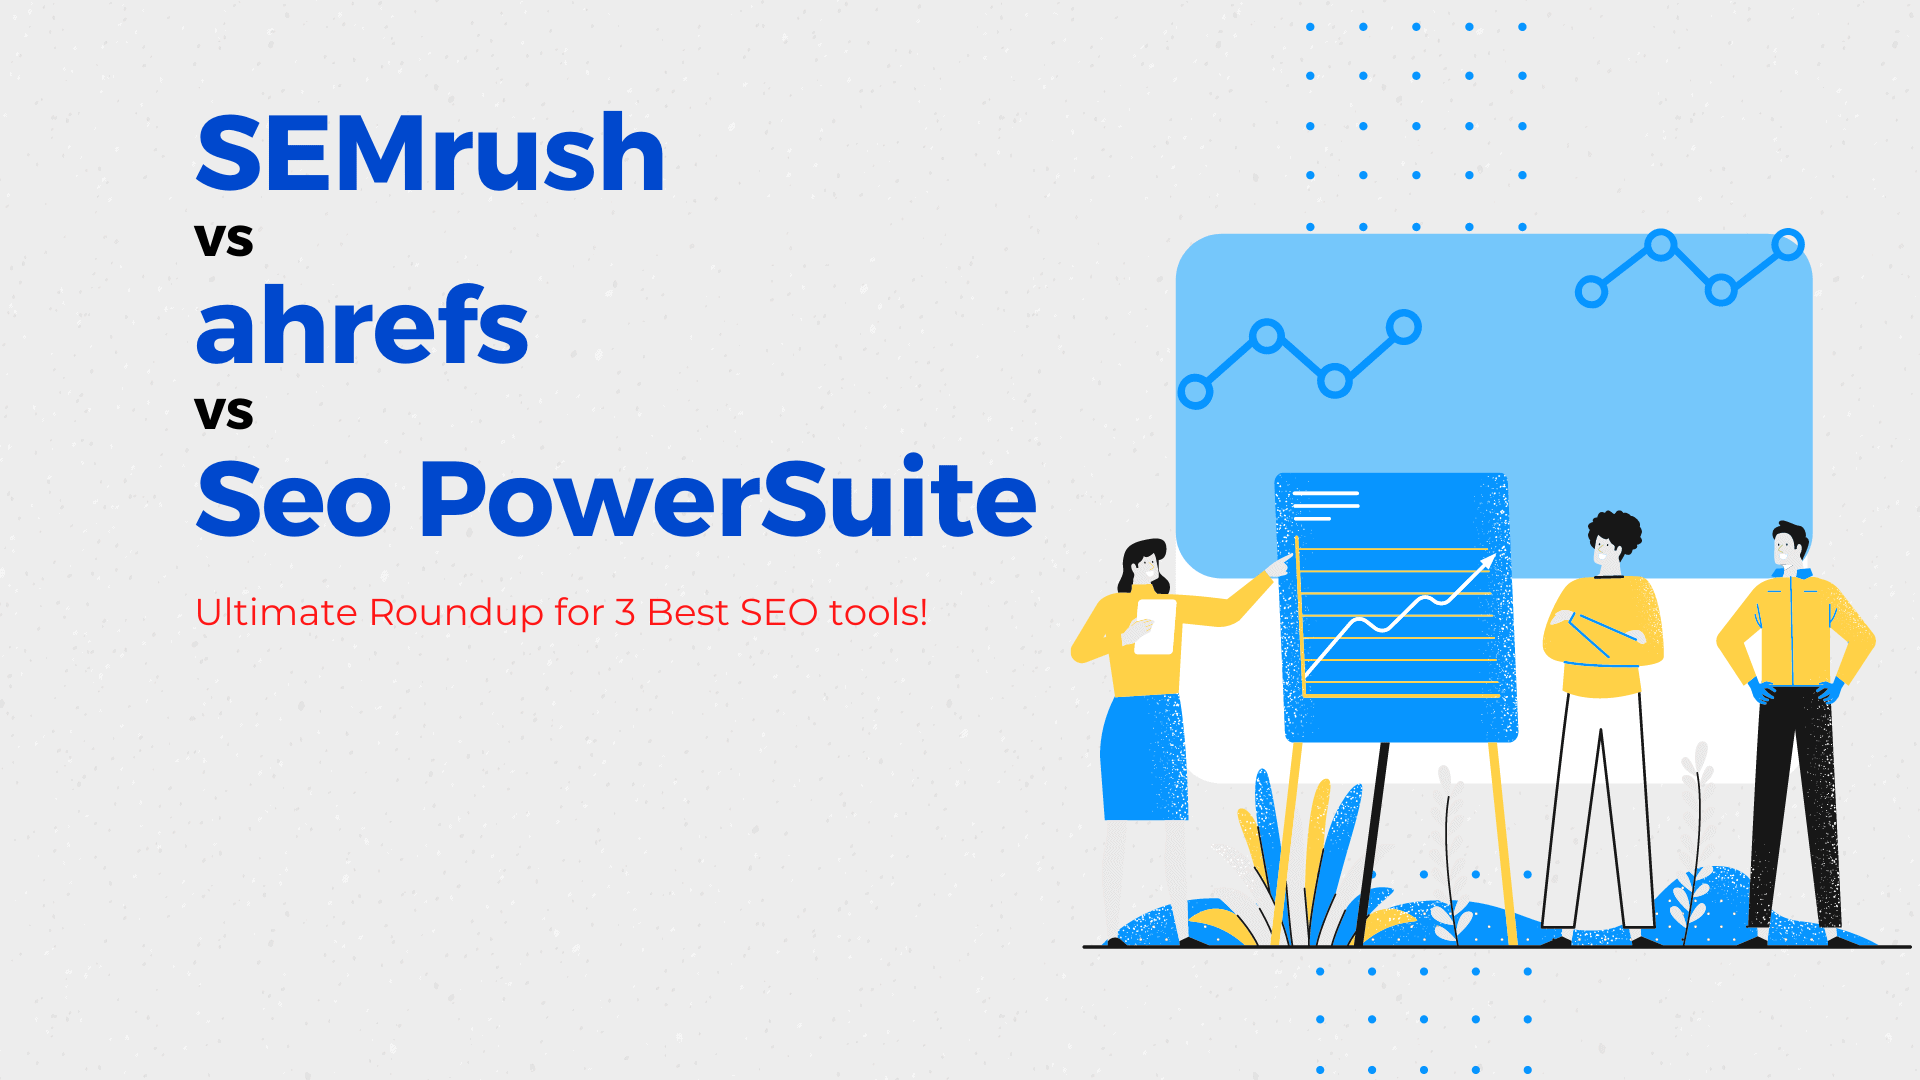 Semrush vs ahrefs vs SEO PowerSuite Comparison for Best SEO Tools